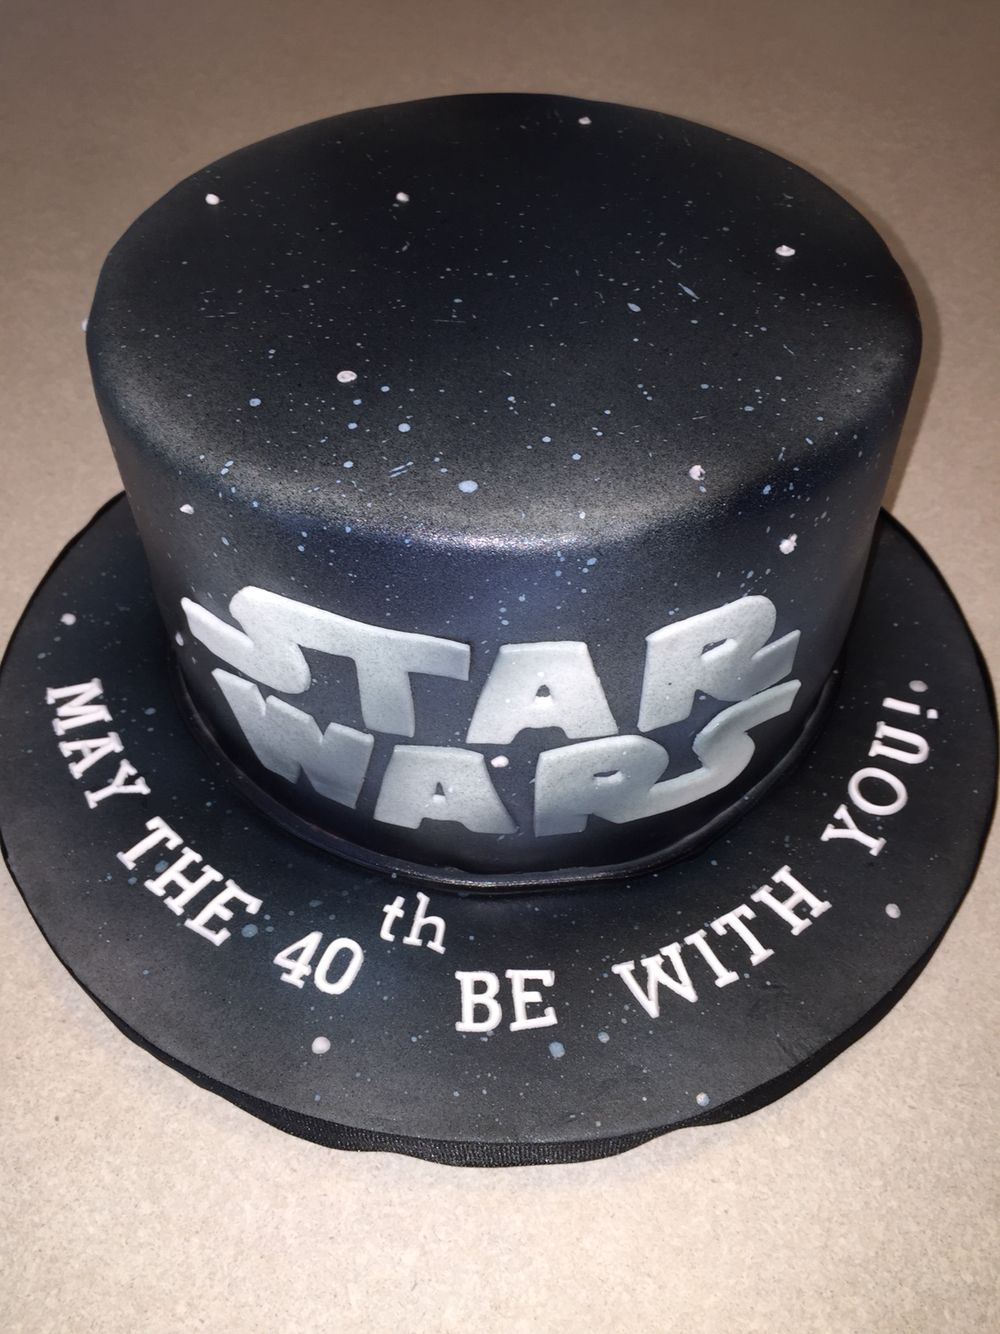 May The 40th Be With You Star Wars Cakes Pinterest